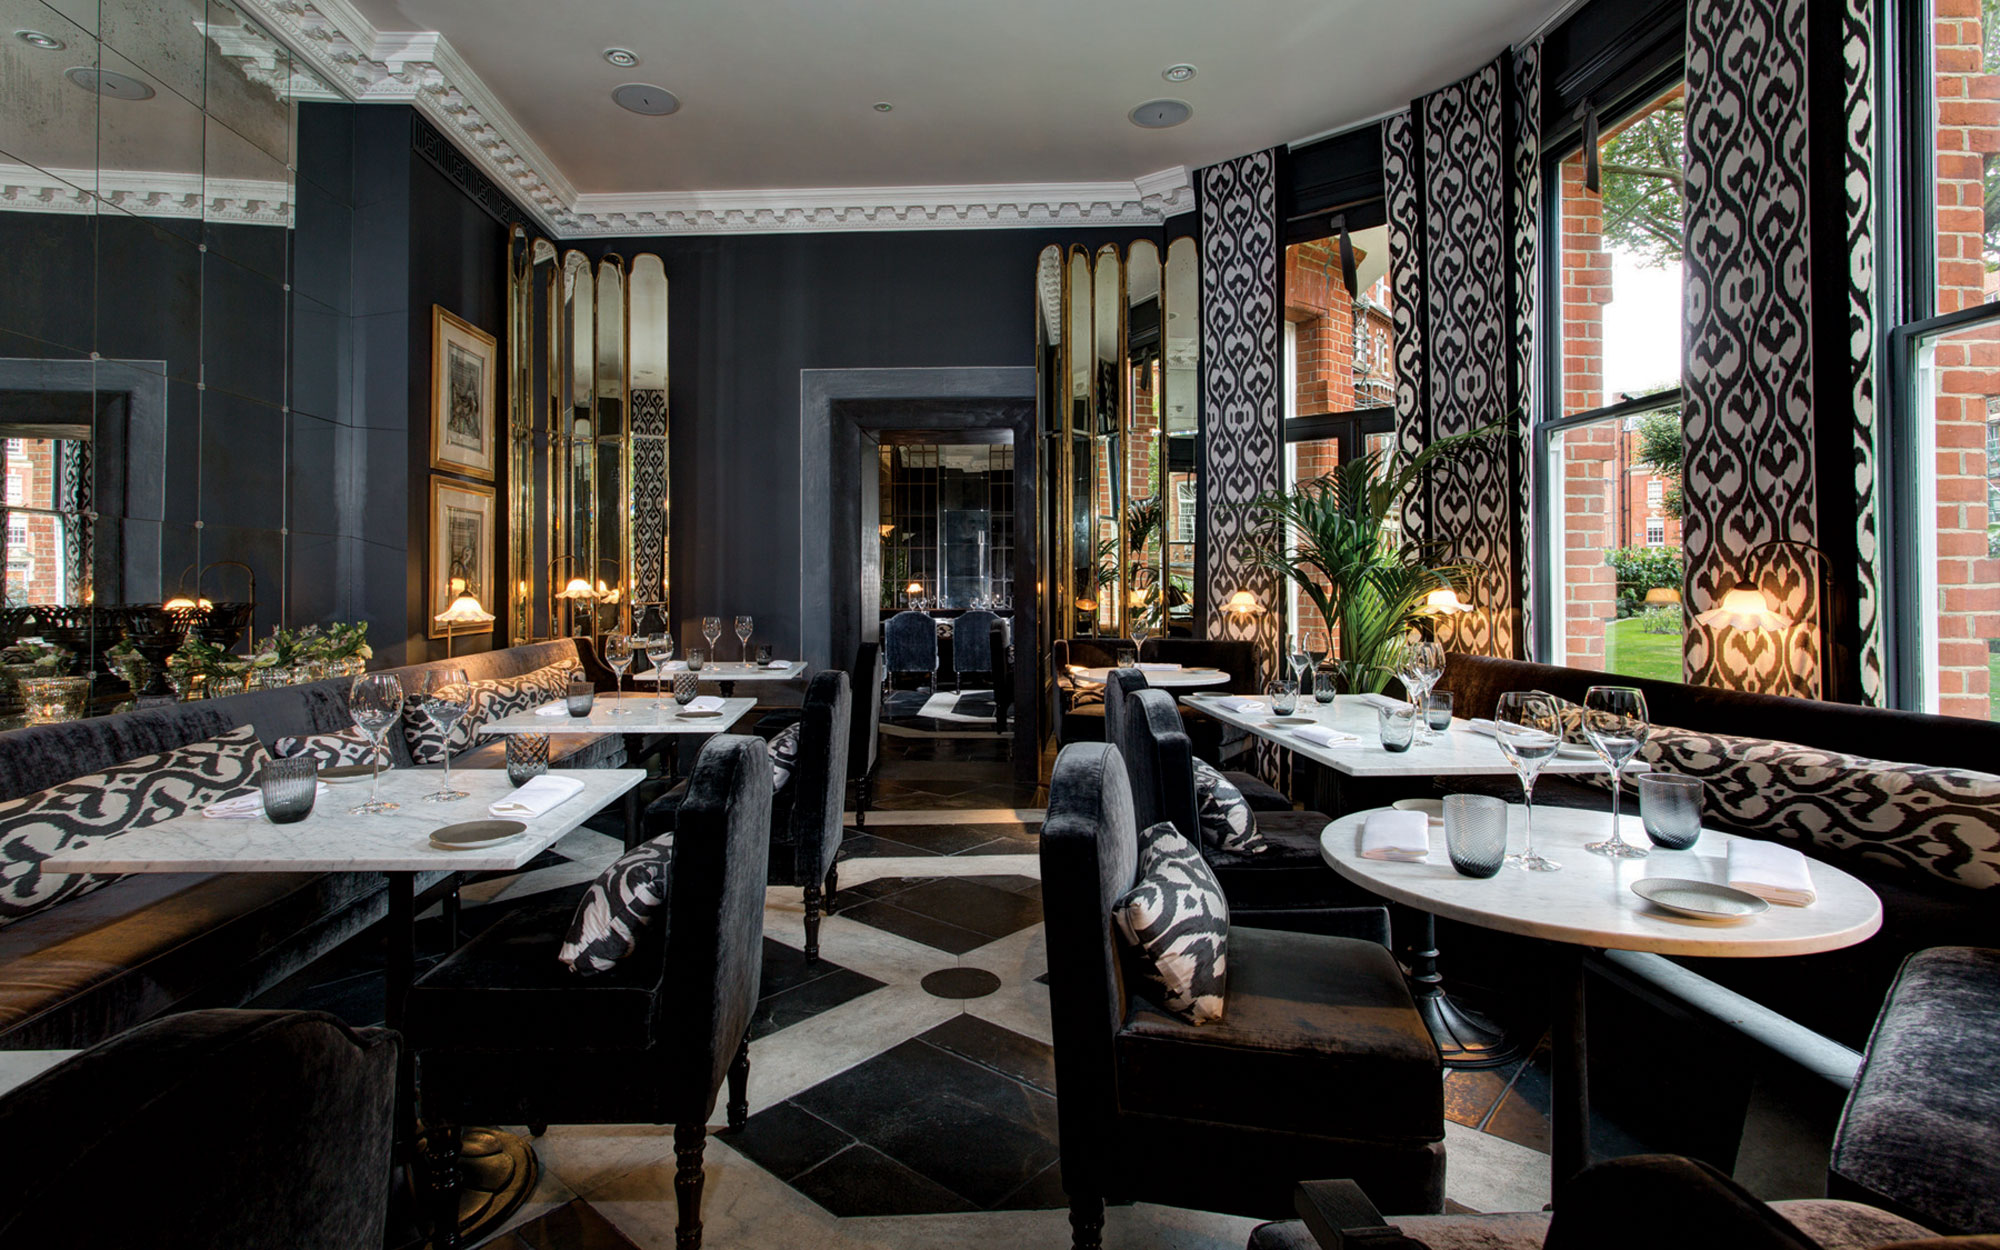 The Franklin restaurant private dining